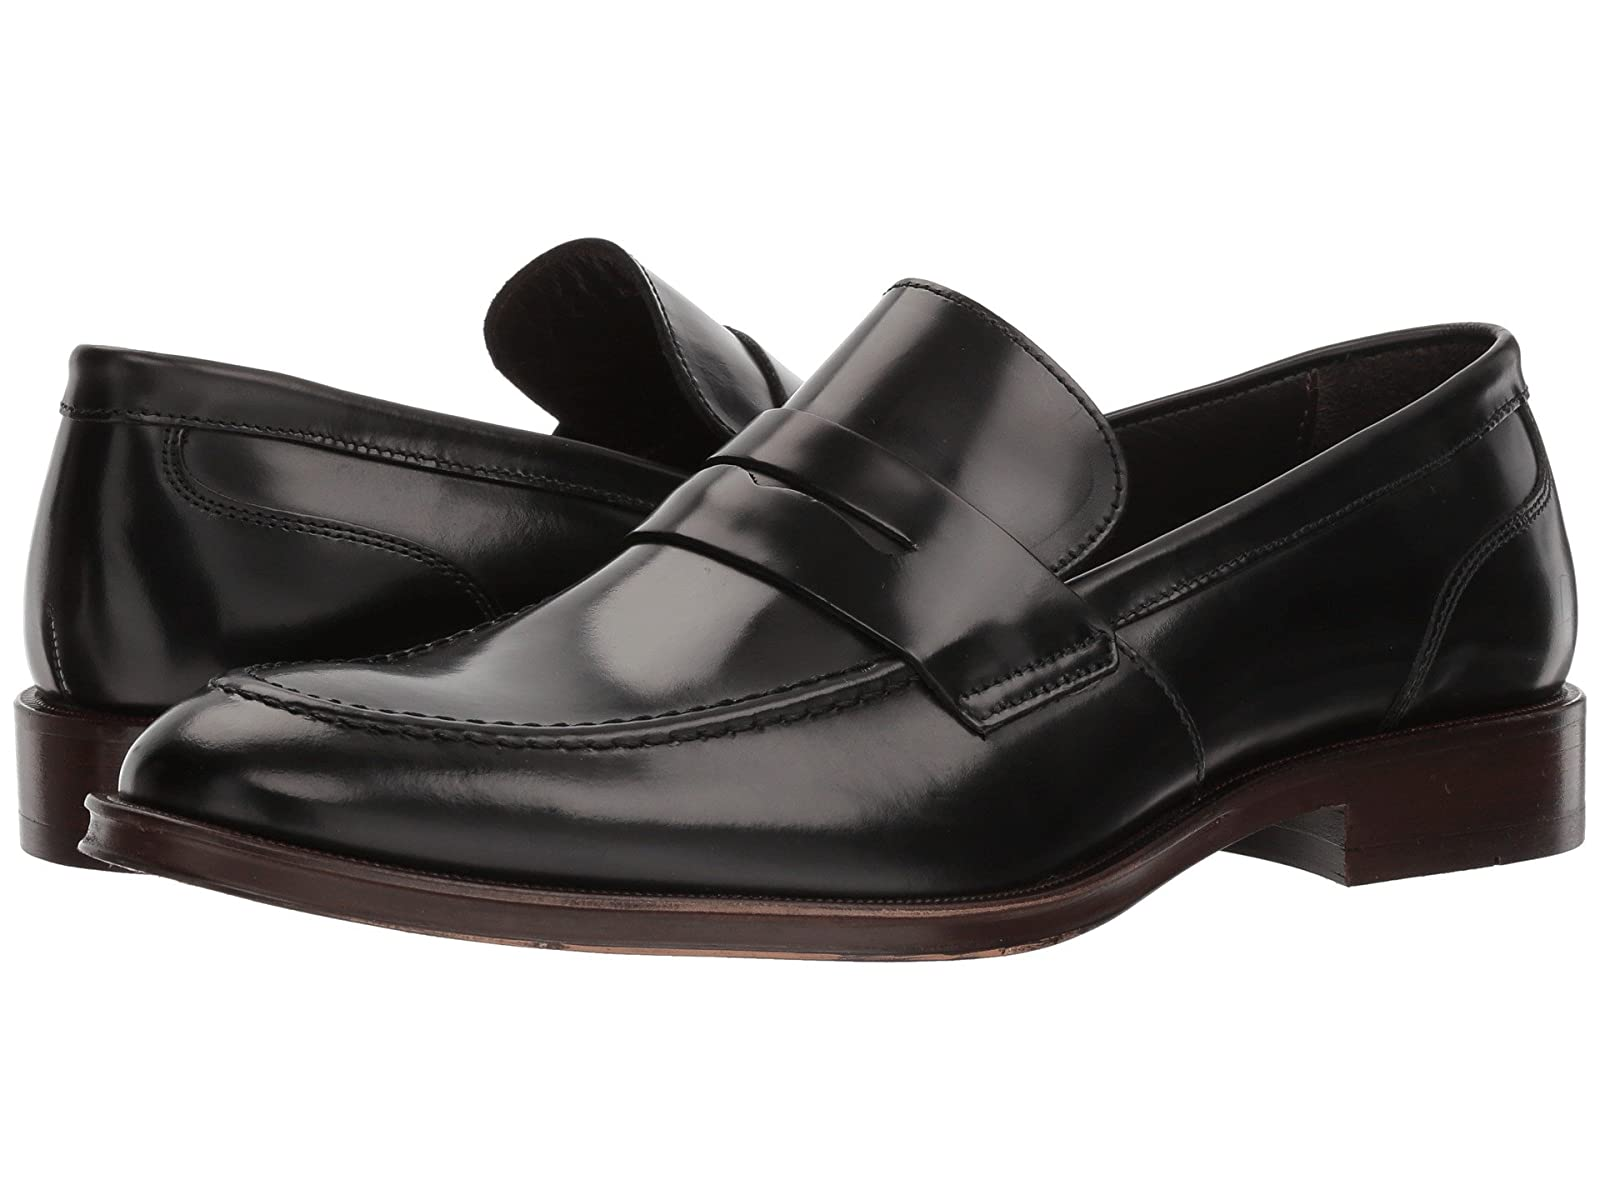 Bruno Magli BostonCheap and distinctive eye-catching shoes